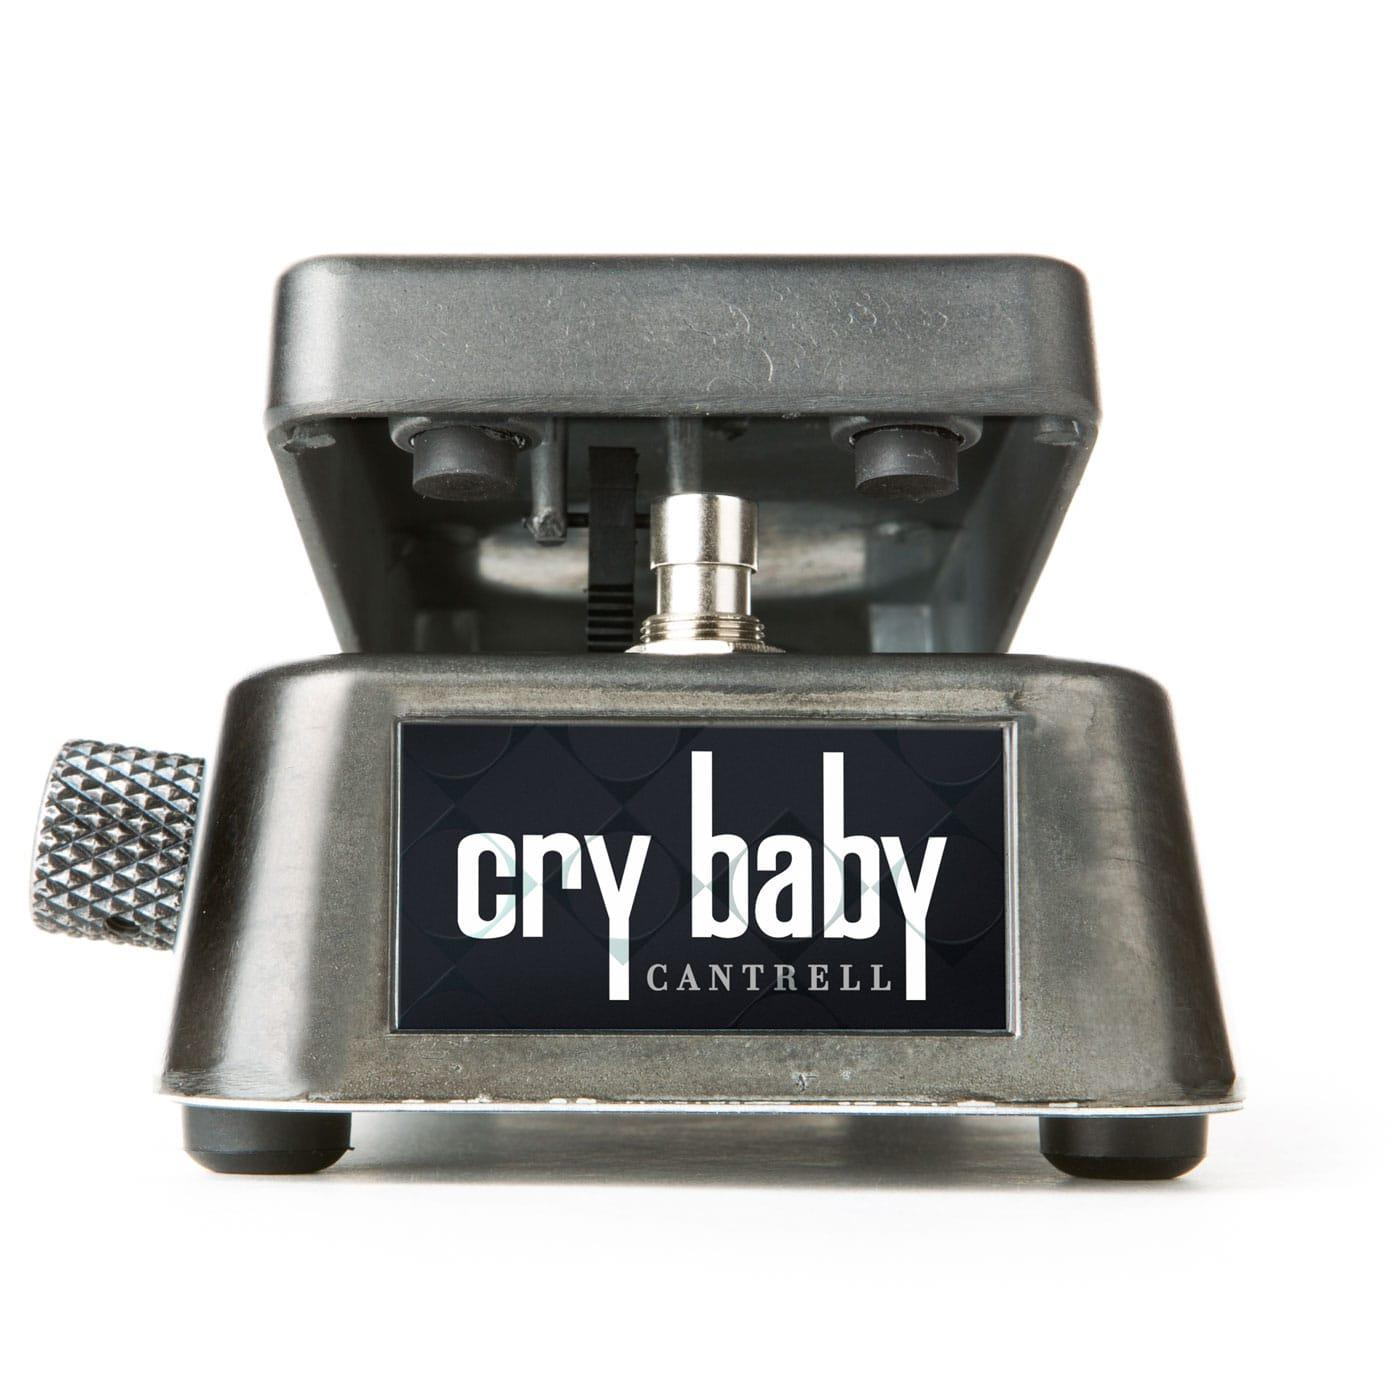 Dunlop JC95B Jerry Cantrell Wah pedal - limited edition black